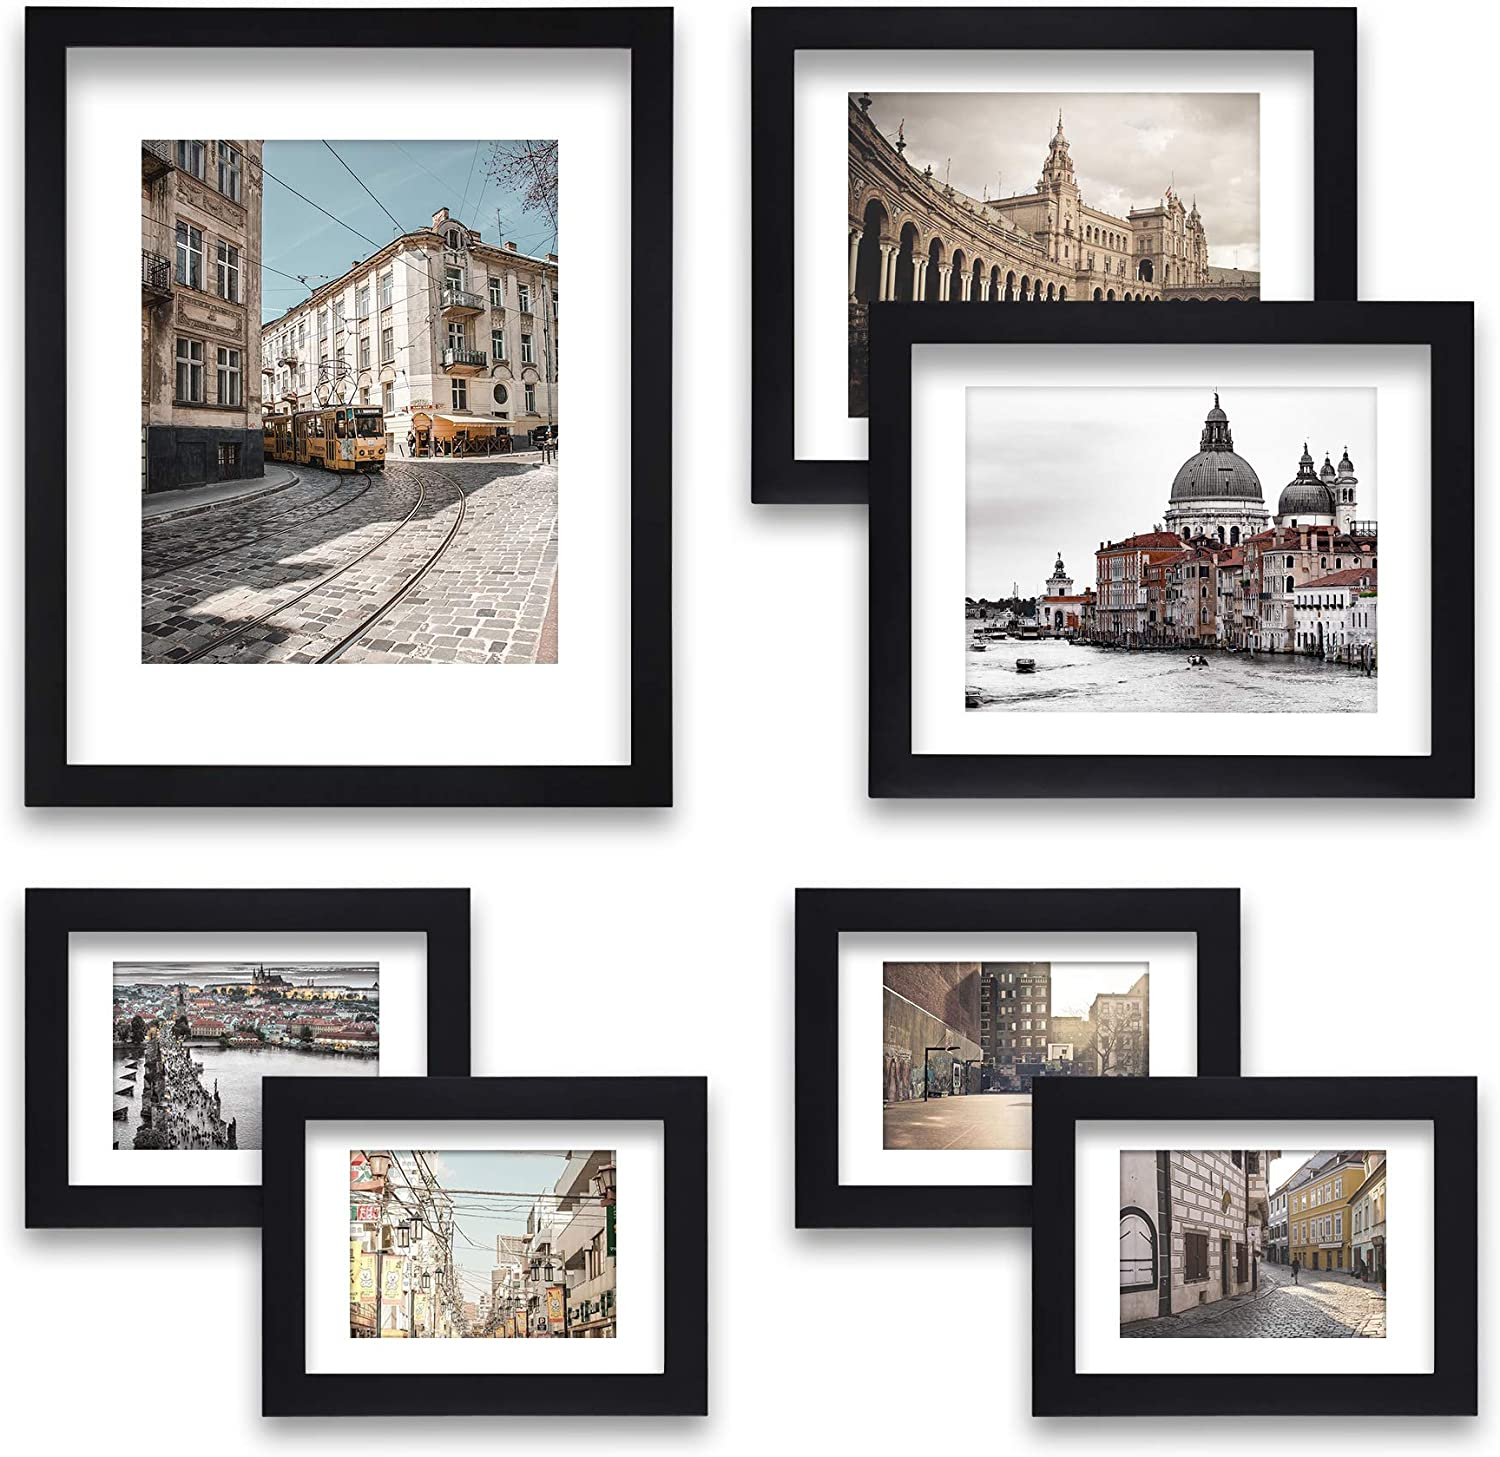 Our shop most popular 7 Pack Black Picture Photo Frame Set - Spring new work one after another 5x7 2pcs 8x10 4pcs 1pc